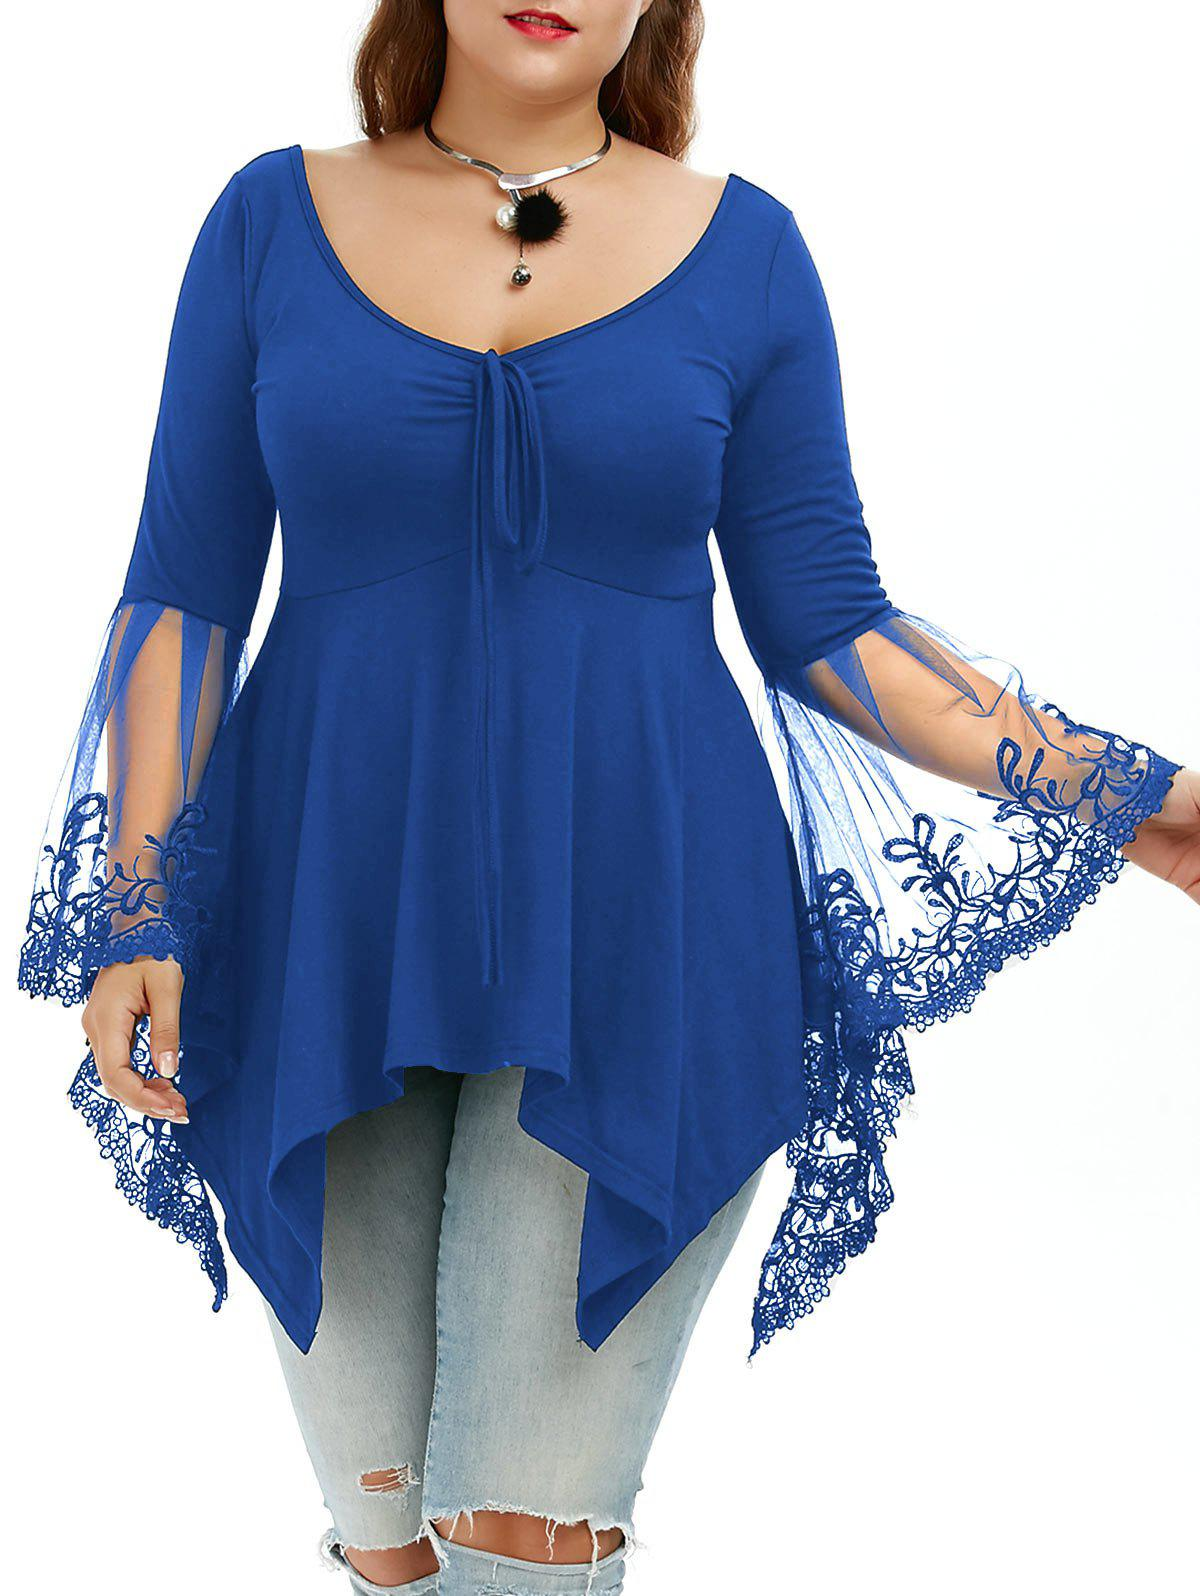 Flare Sleeve Handkerchief Plus Size Tunic TopWOMEN<br><br>Size: 5XL; Color: BLUE; Material: Cotton Blends,Polyester; Shirt Length: Regular; Sleeve Length: Full; Collar: U Neck; Style: Casual; Season: Fall,Spring,Summer; Sleeve Type: Flare Sleeve; Embellishment: Lace; Pattern Type: Solid; Elasticity: Elastic; Weight: 0.3100kg; Package Contents: 1 x Top;